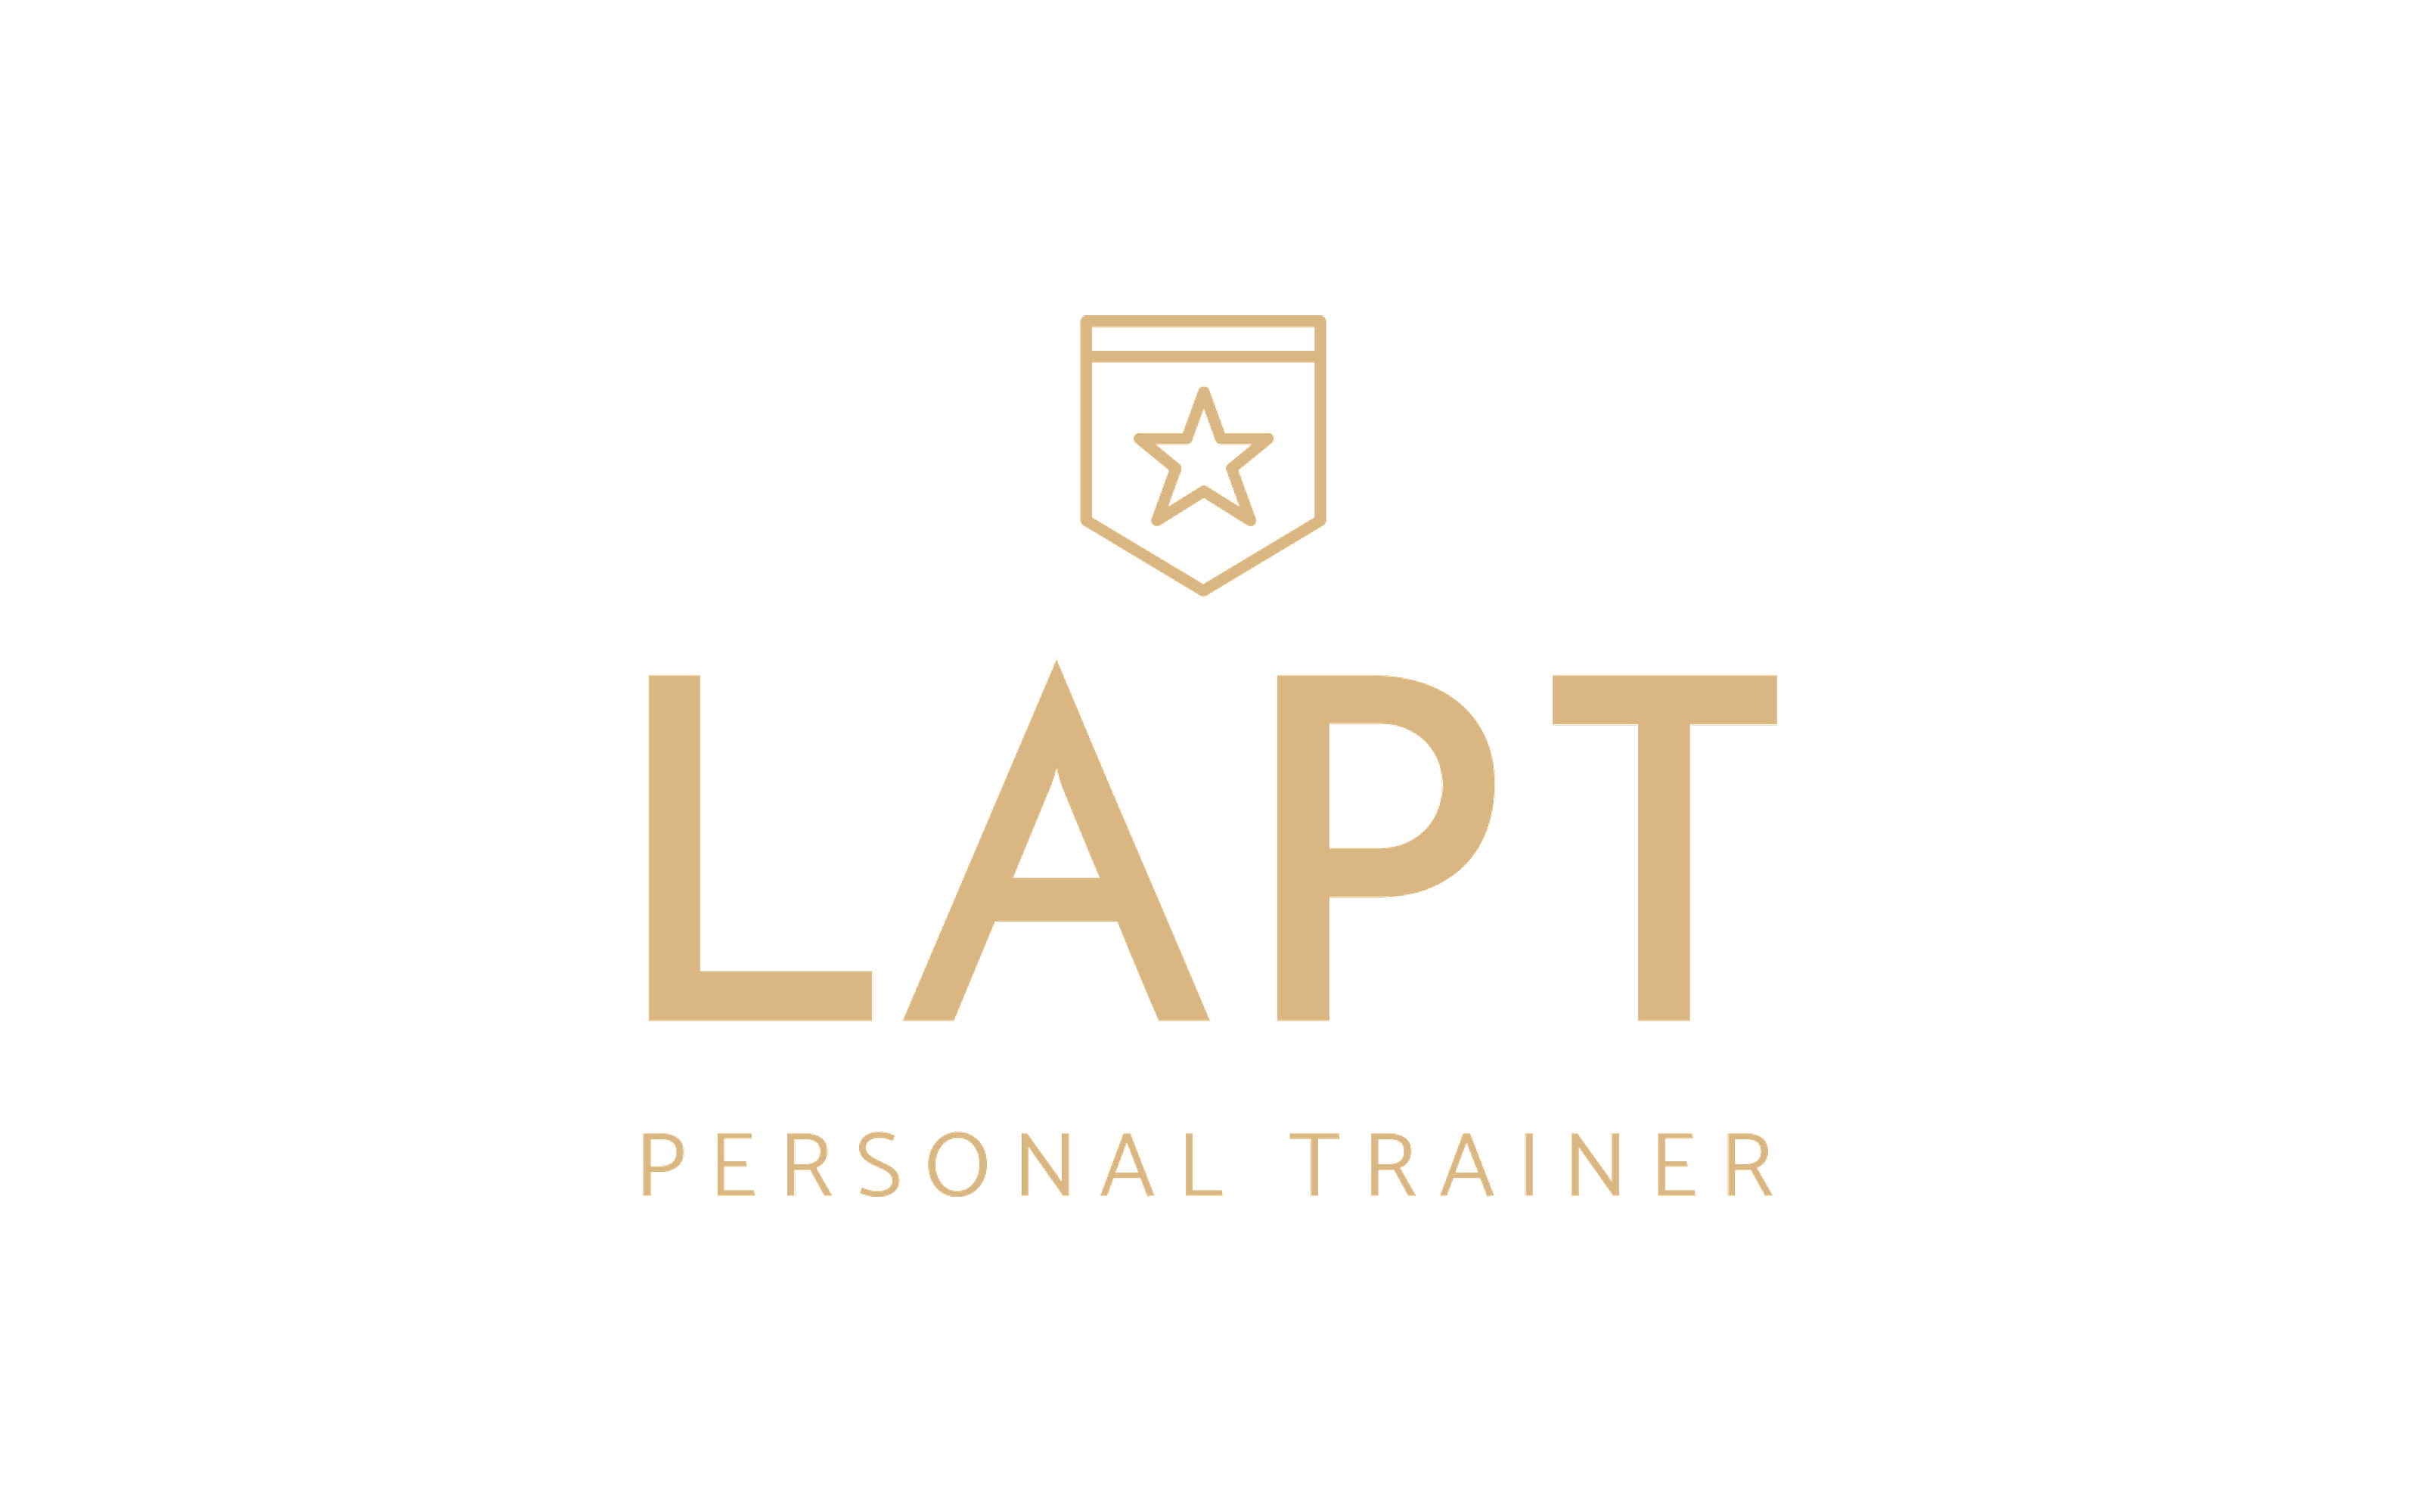 LAPT Personal Trainer color_logo_transparent